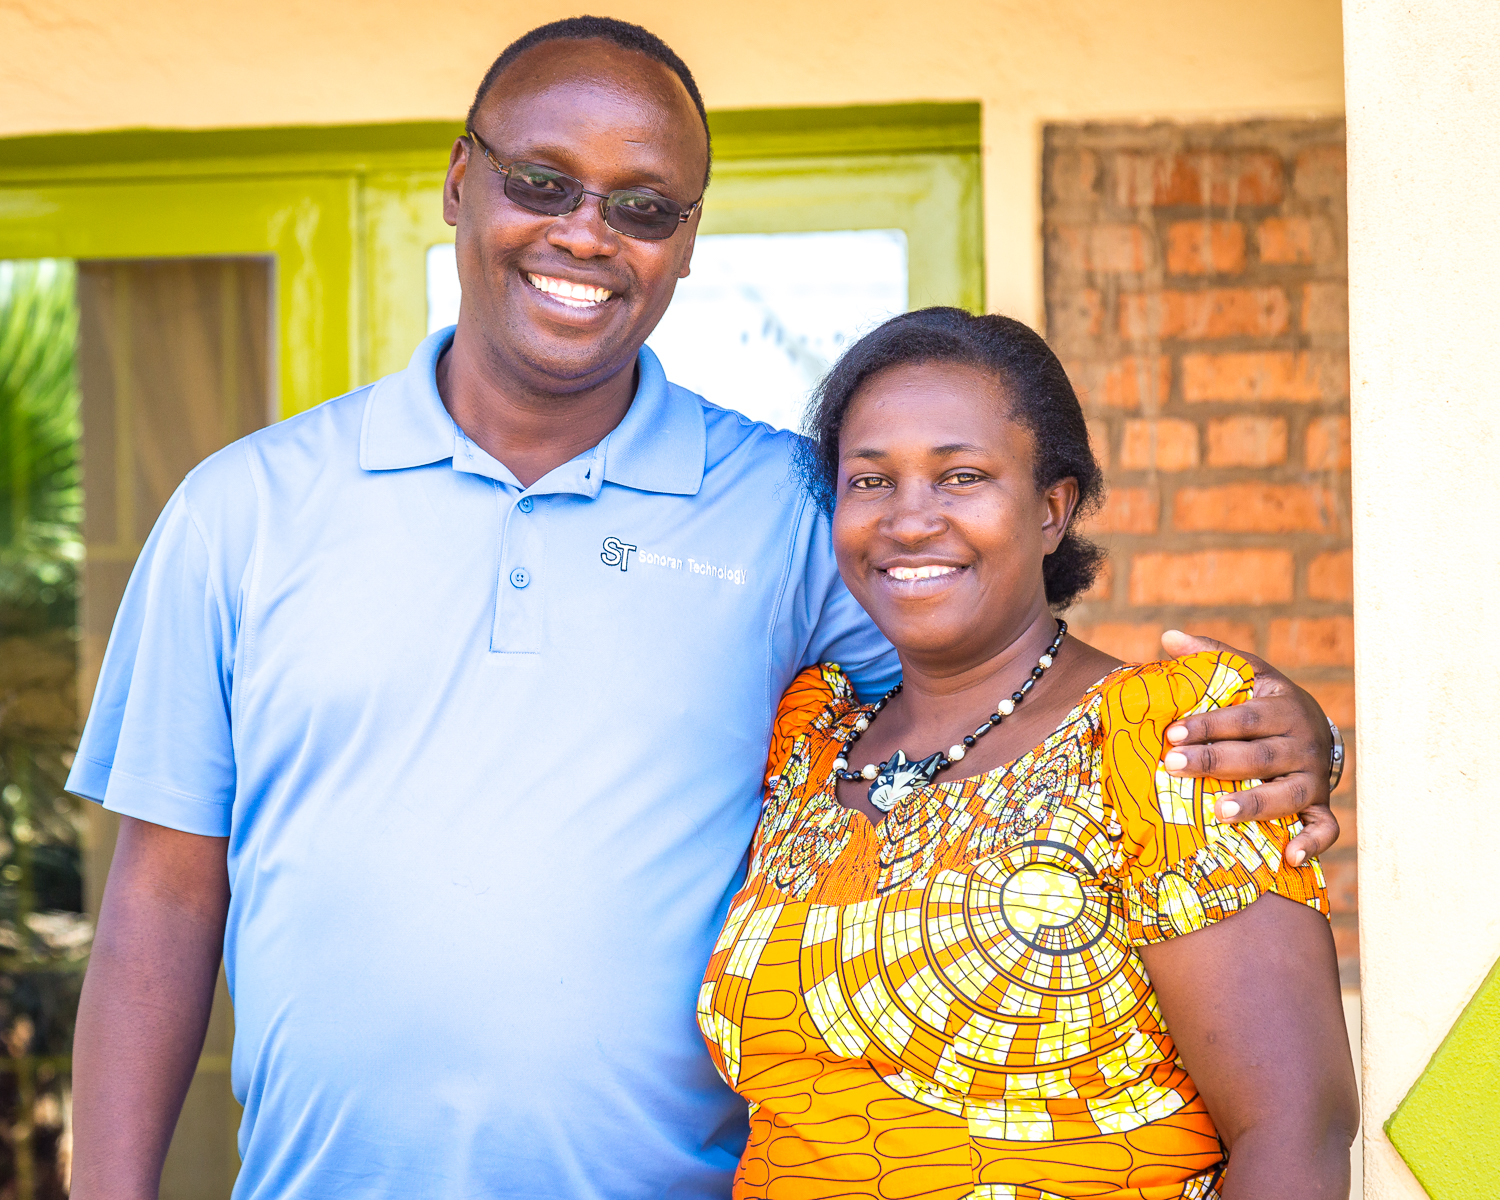 Jean Baptiste TuyishimireJean was born in Rwanda in 1970 and became a Christian in 1981. He is married to Beatrice Uwumuremyi and together they have five children named David, Samuel, Hannah, Batista, & Emmanuelle.They have the same heart and vision. When they married, they knew that we will be spending the rest of their lives discipling girls, boys, women, and men who would make a lasting impact on a lost world. They are both graduates from the Baptist Theological seminary of Zambia, Beatrice has a nursing university diploma; and Jean is pursuing his masters degree. For the past 20 years they have pastored 4 different churches, started 15 new churches, and are currently serving as pastors again. they are starting and growing new churches in and around Rwanda in partnership with Come Away Missions. -